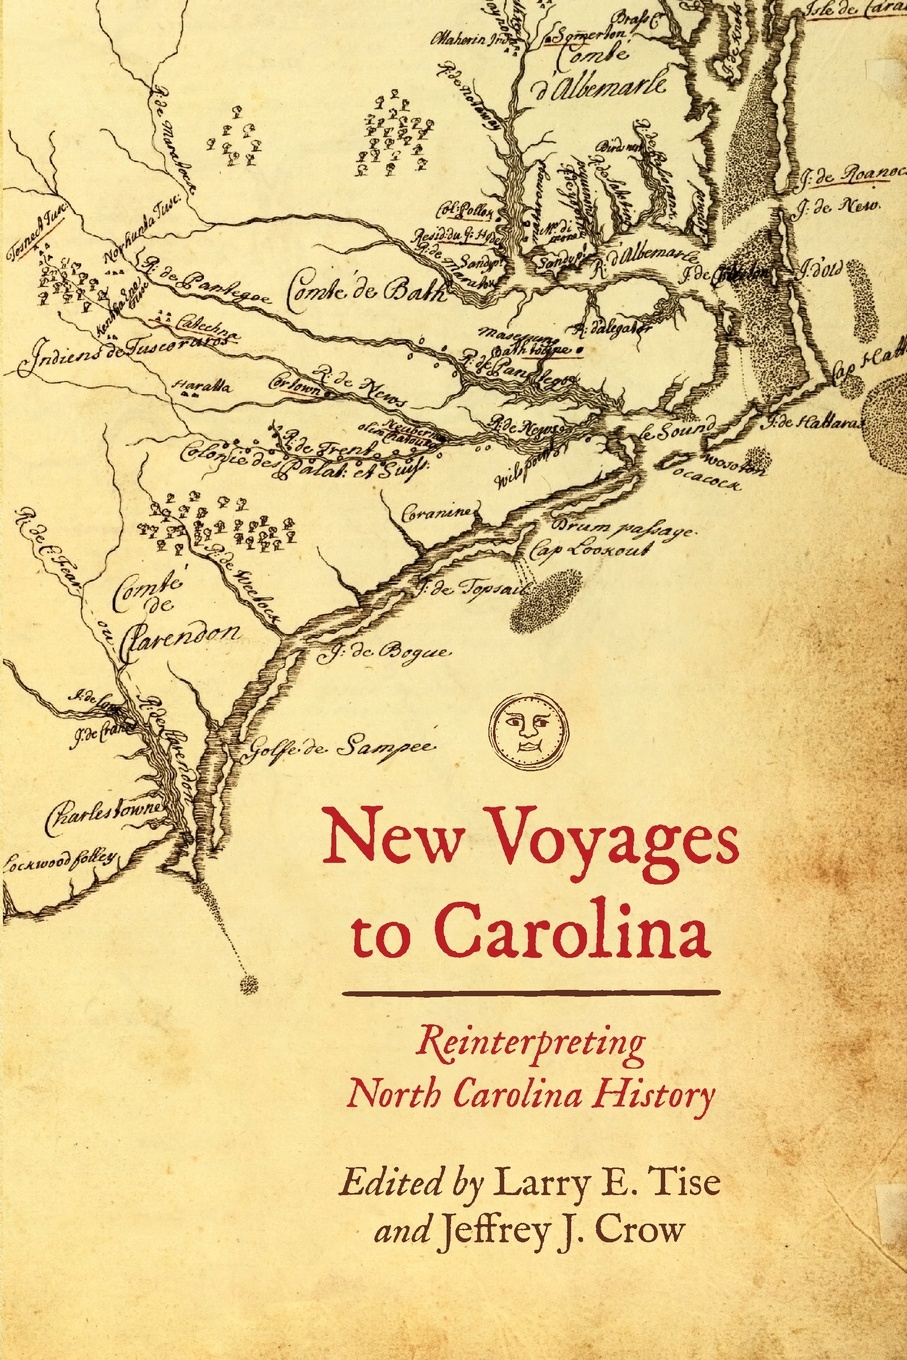 New Voyages to Carolina. Reinterpreting North Carolina History north carolina dept of conservation and development the new north carolina in the advancing south